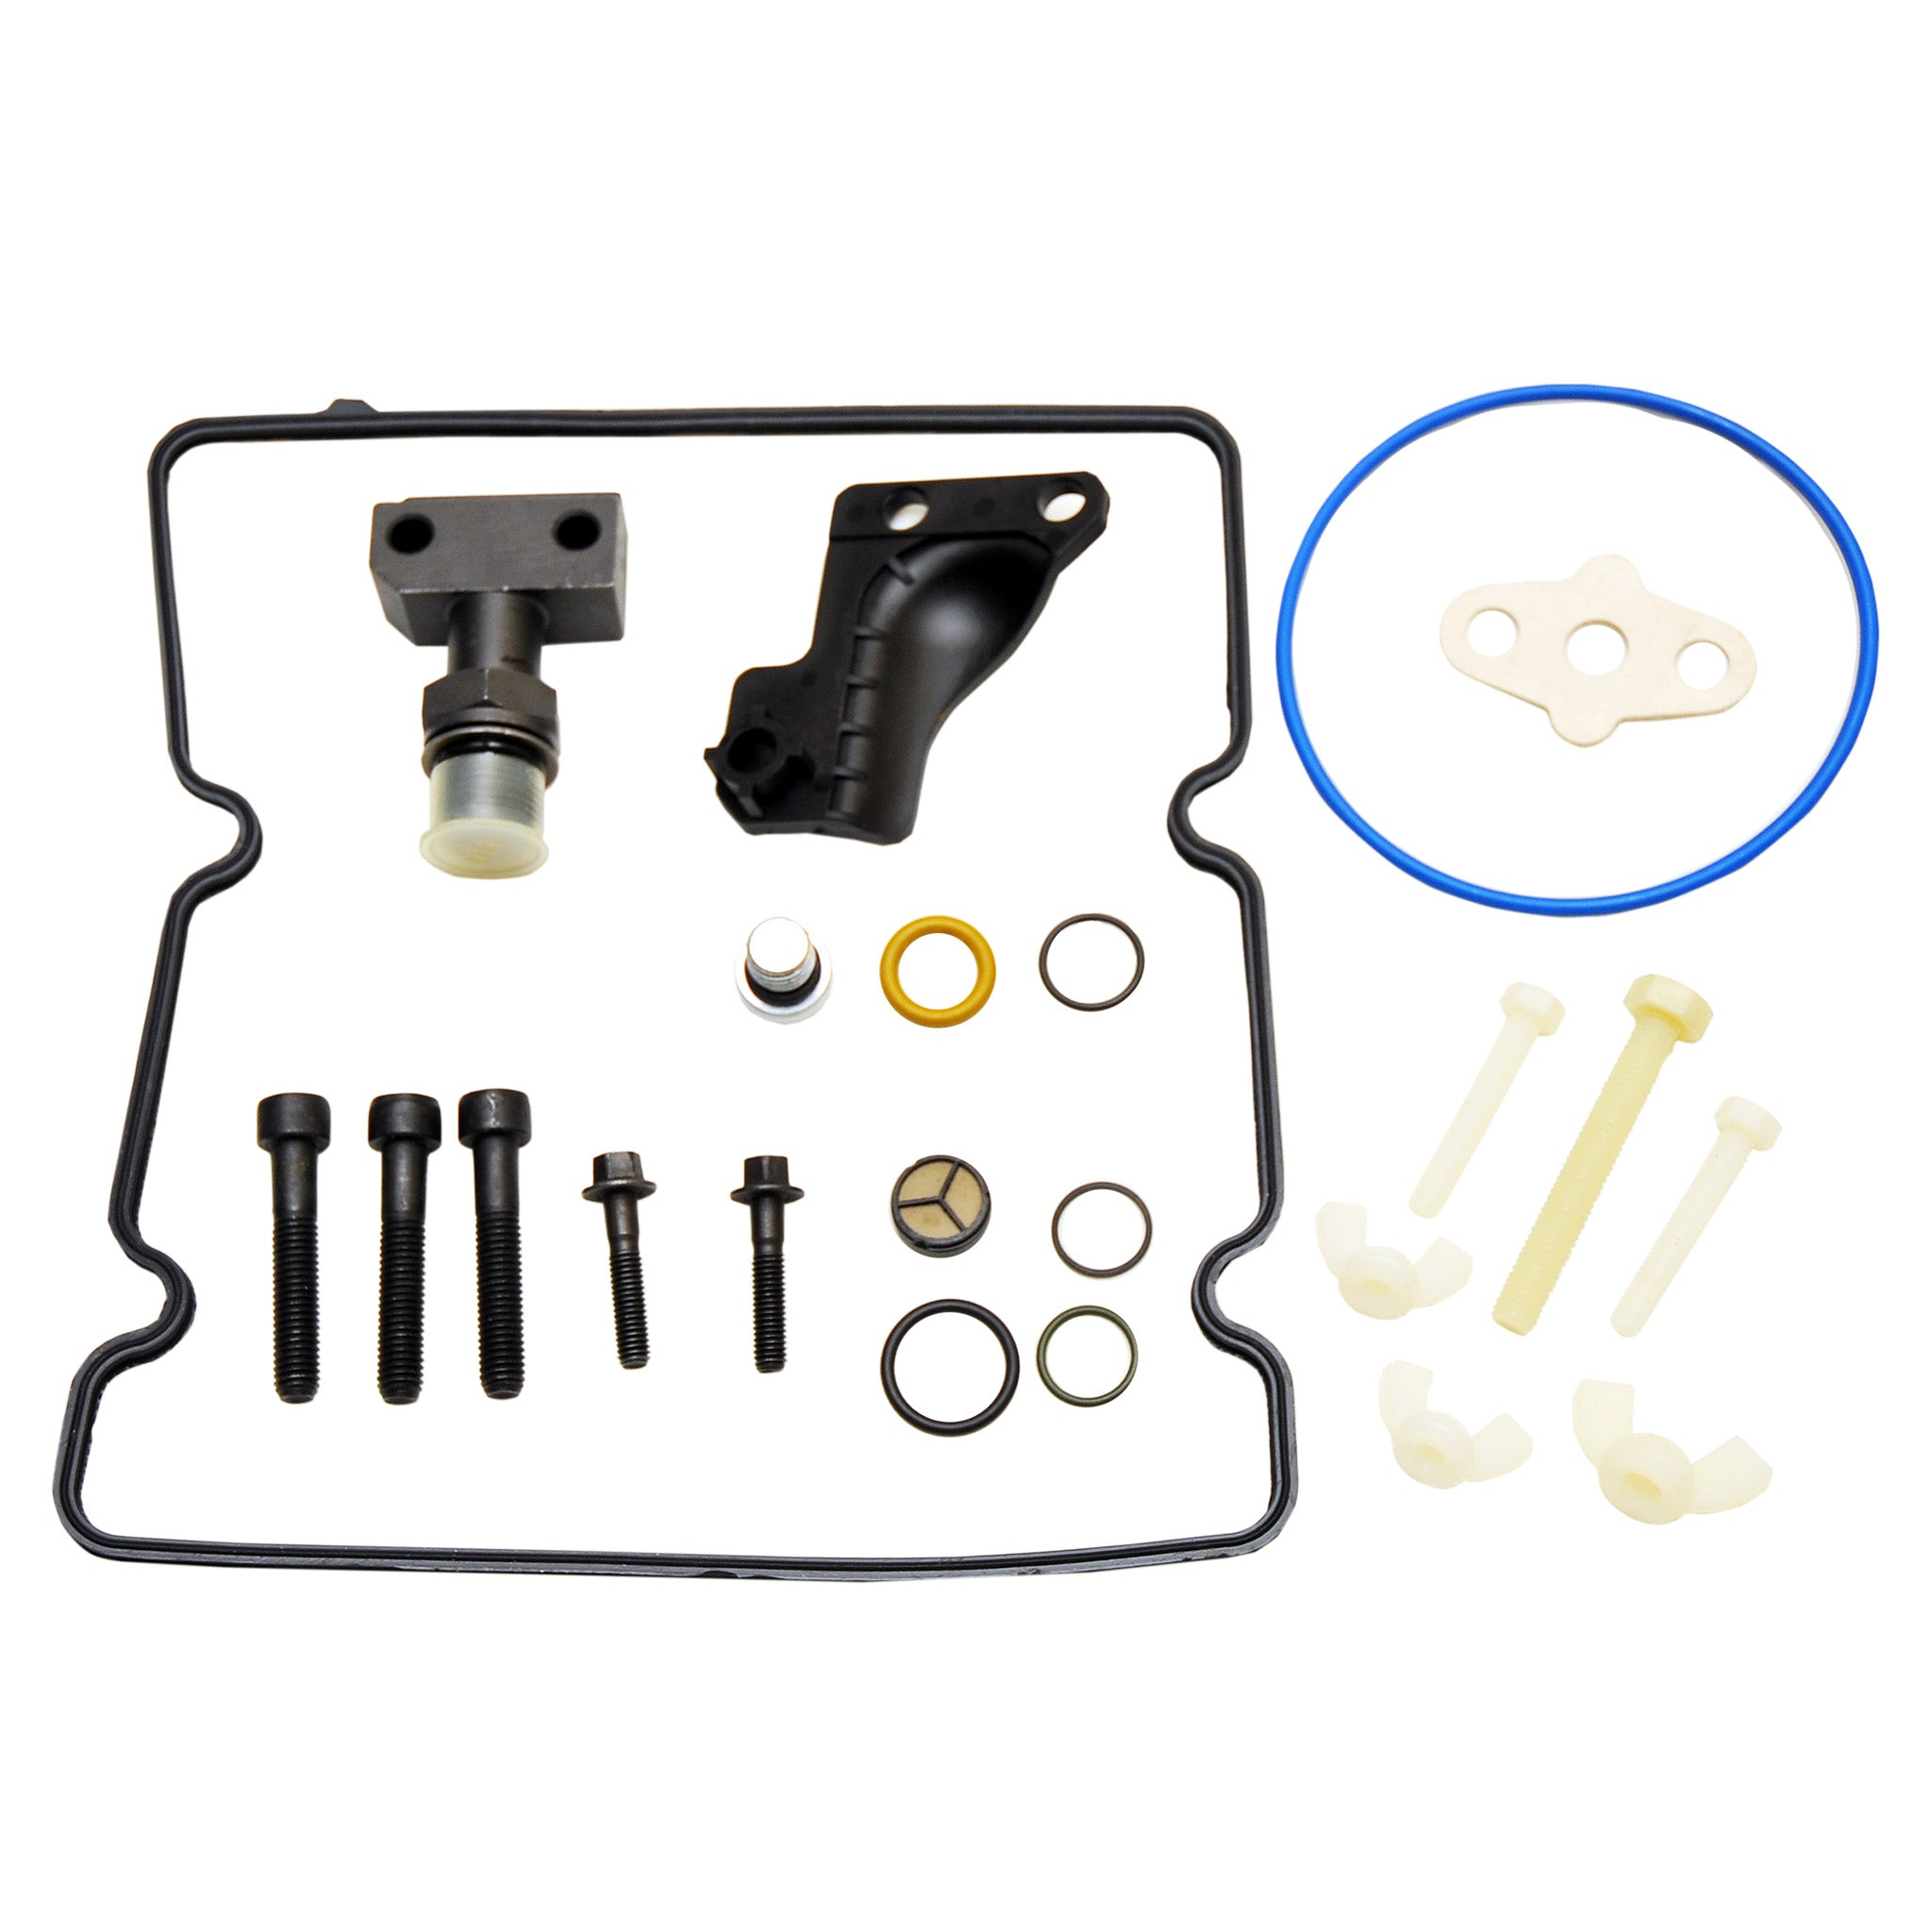 High Pressure Oil Pump (HPOP) Connector Fitting Upgrade Kit, 2005-2007 F-Series, 2005-2010 E-Series